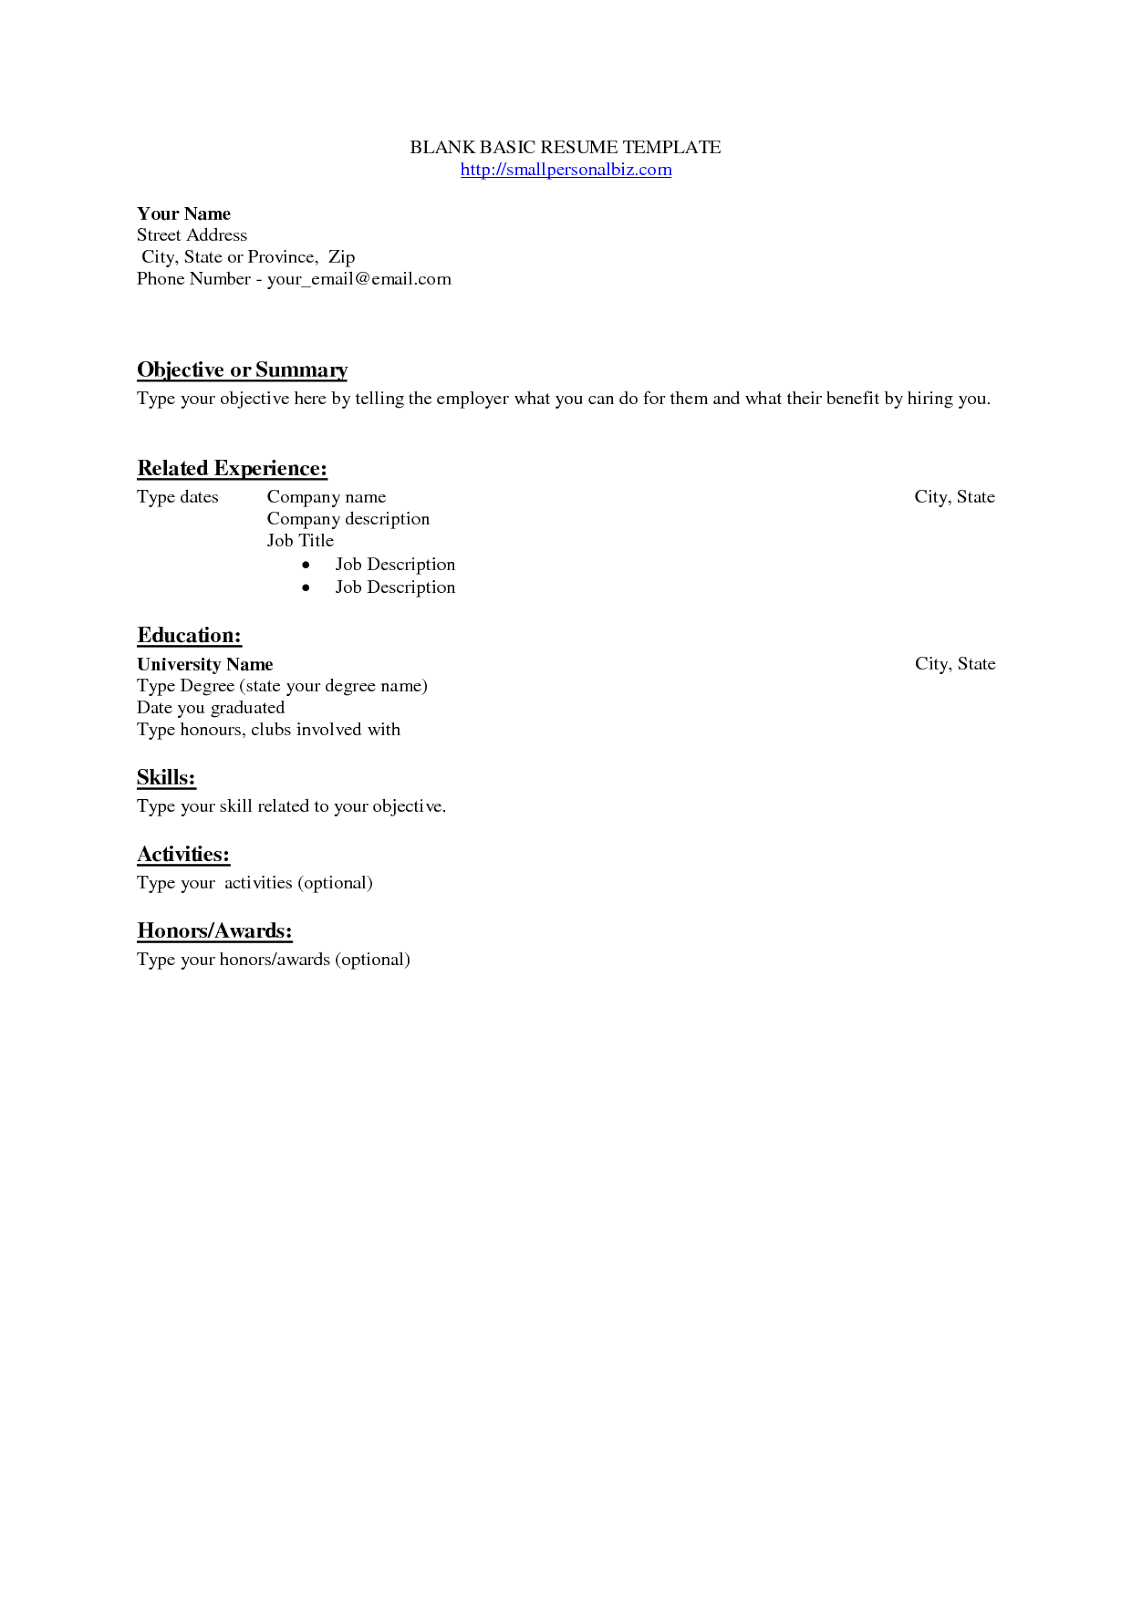 quick resume builder free printable resume outlines blank job resume form printable basic with orvis center com template - Easy Resume Builder Free